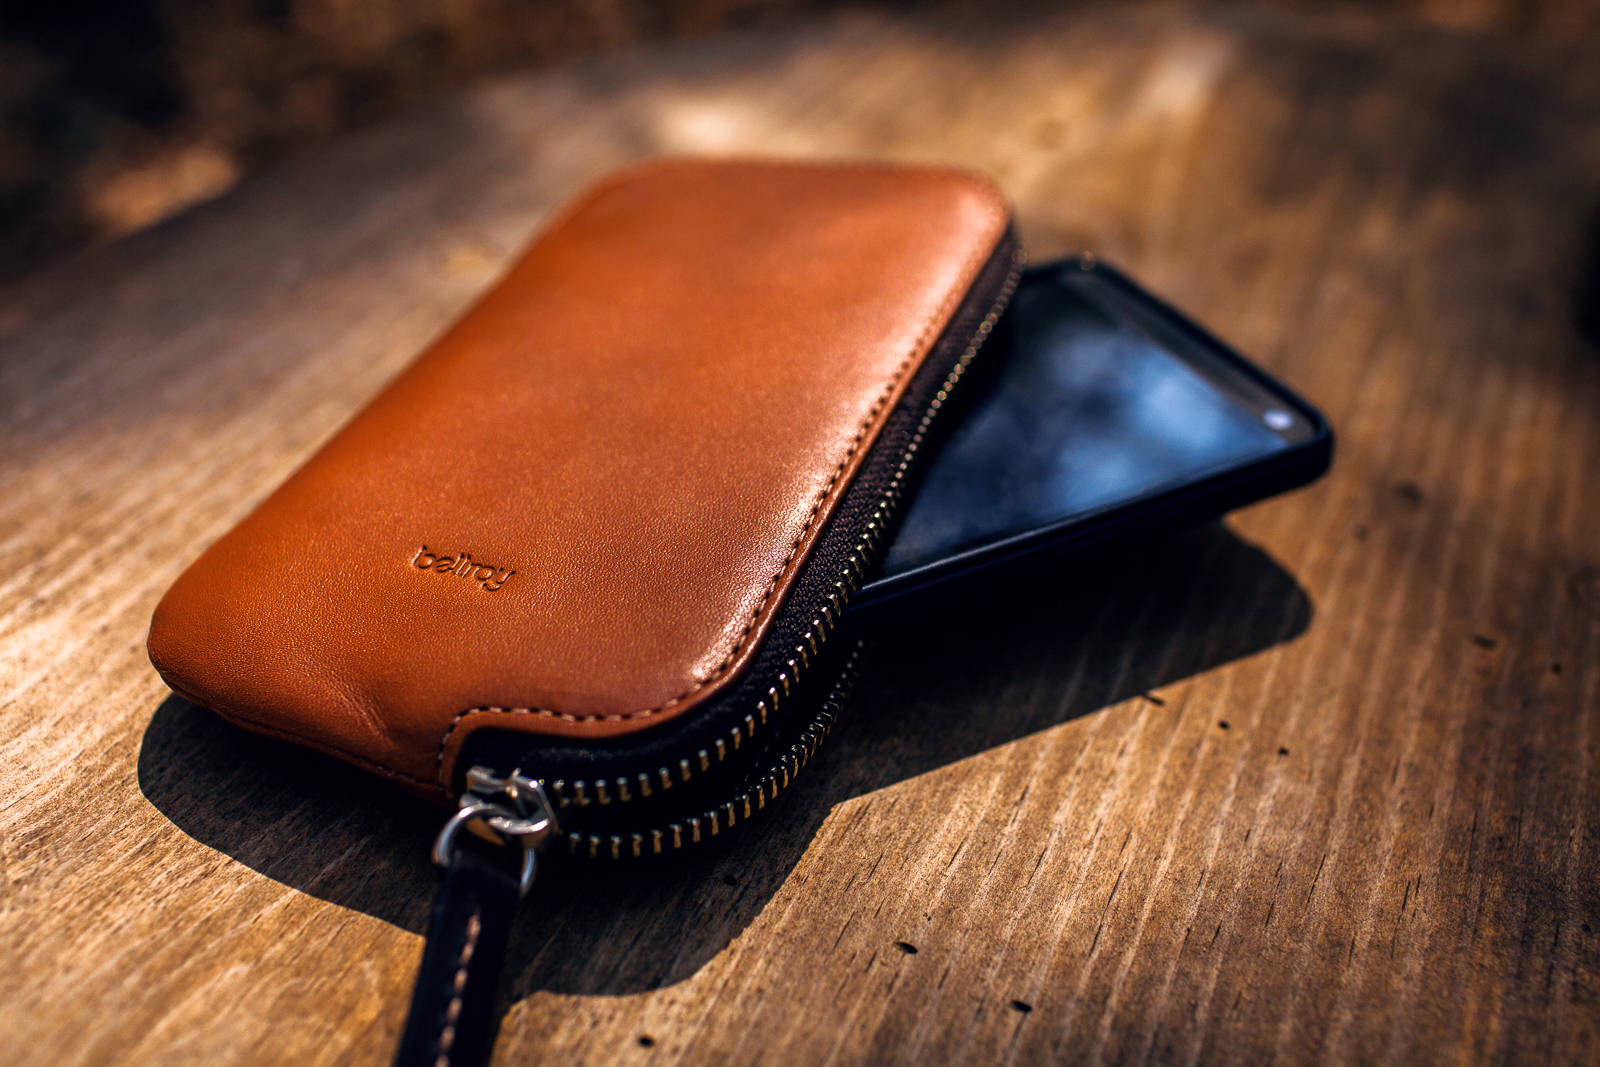 cfe442b776 Bellroy Phone Wallet Review – ELIAS VISUALS